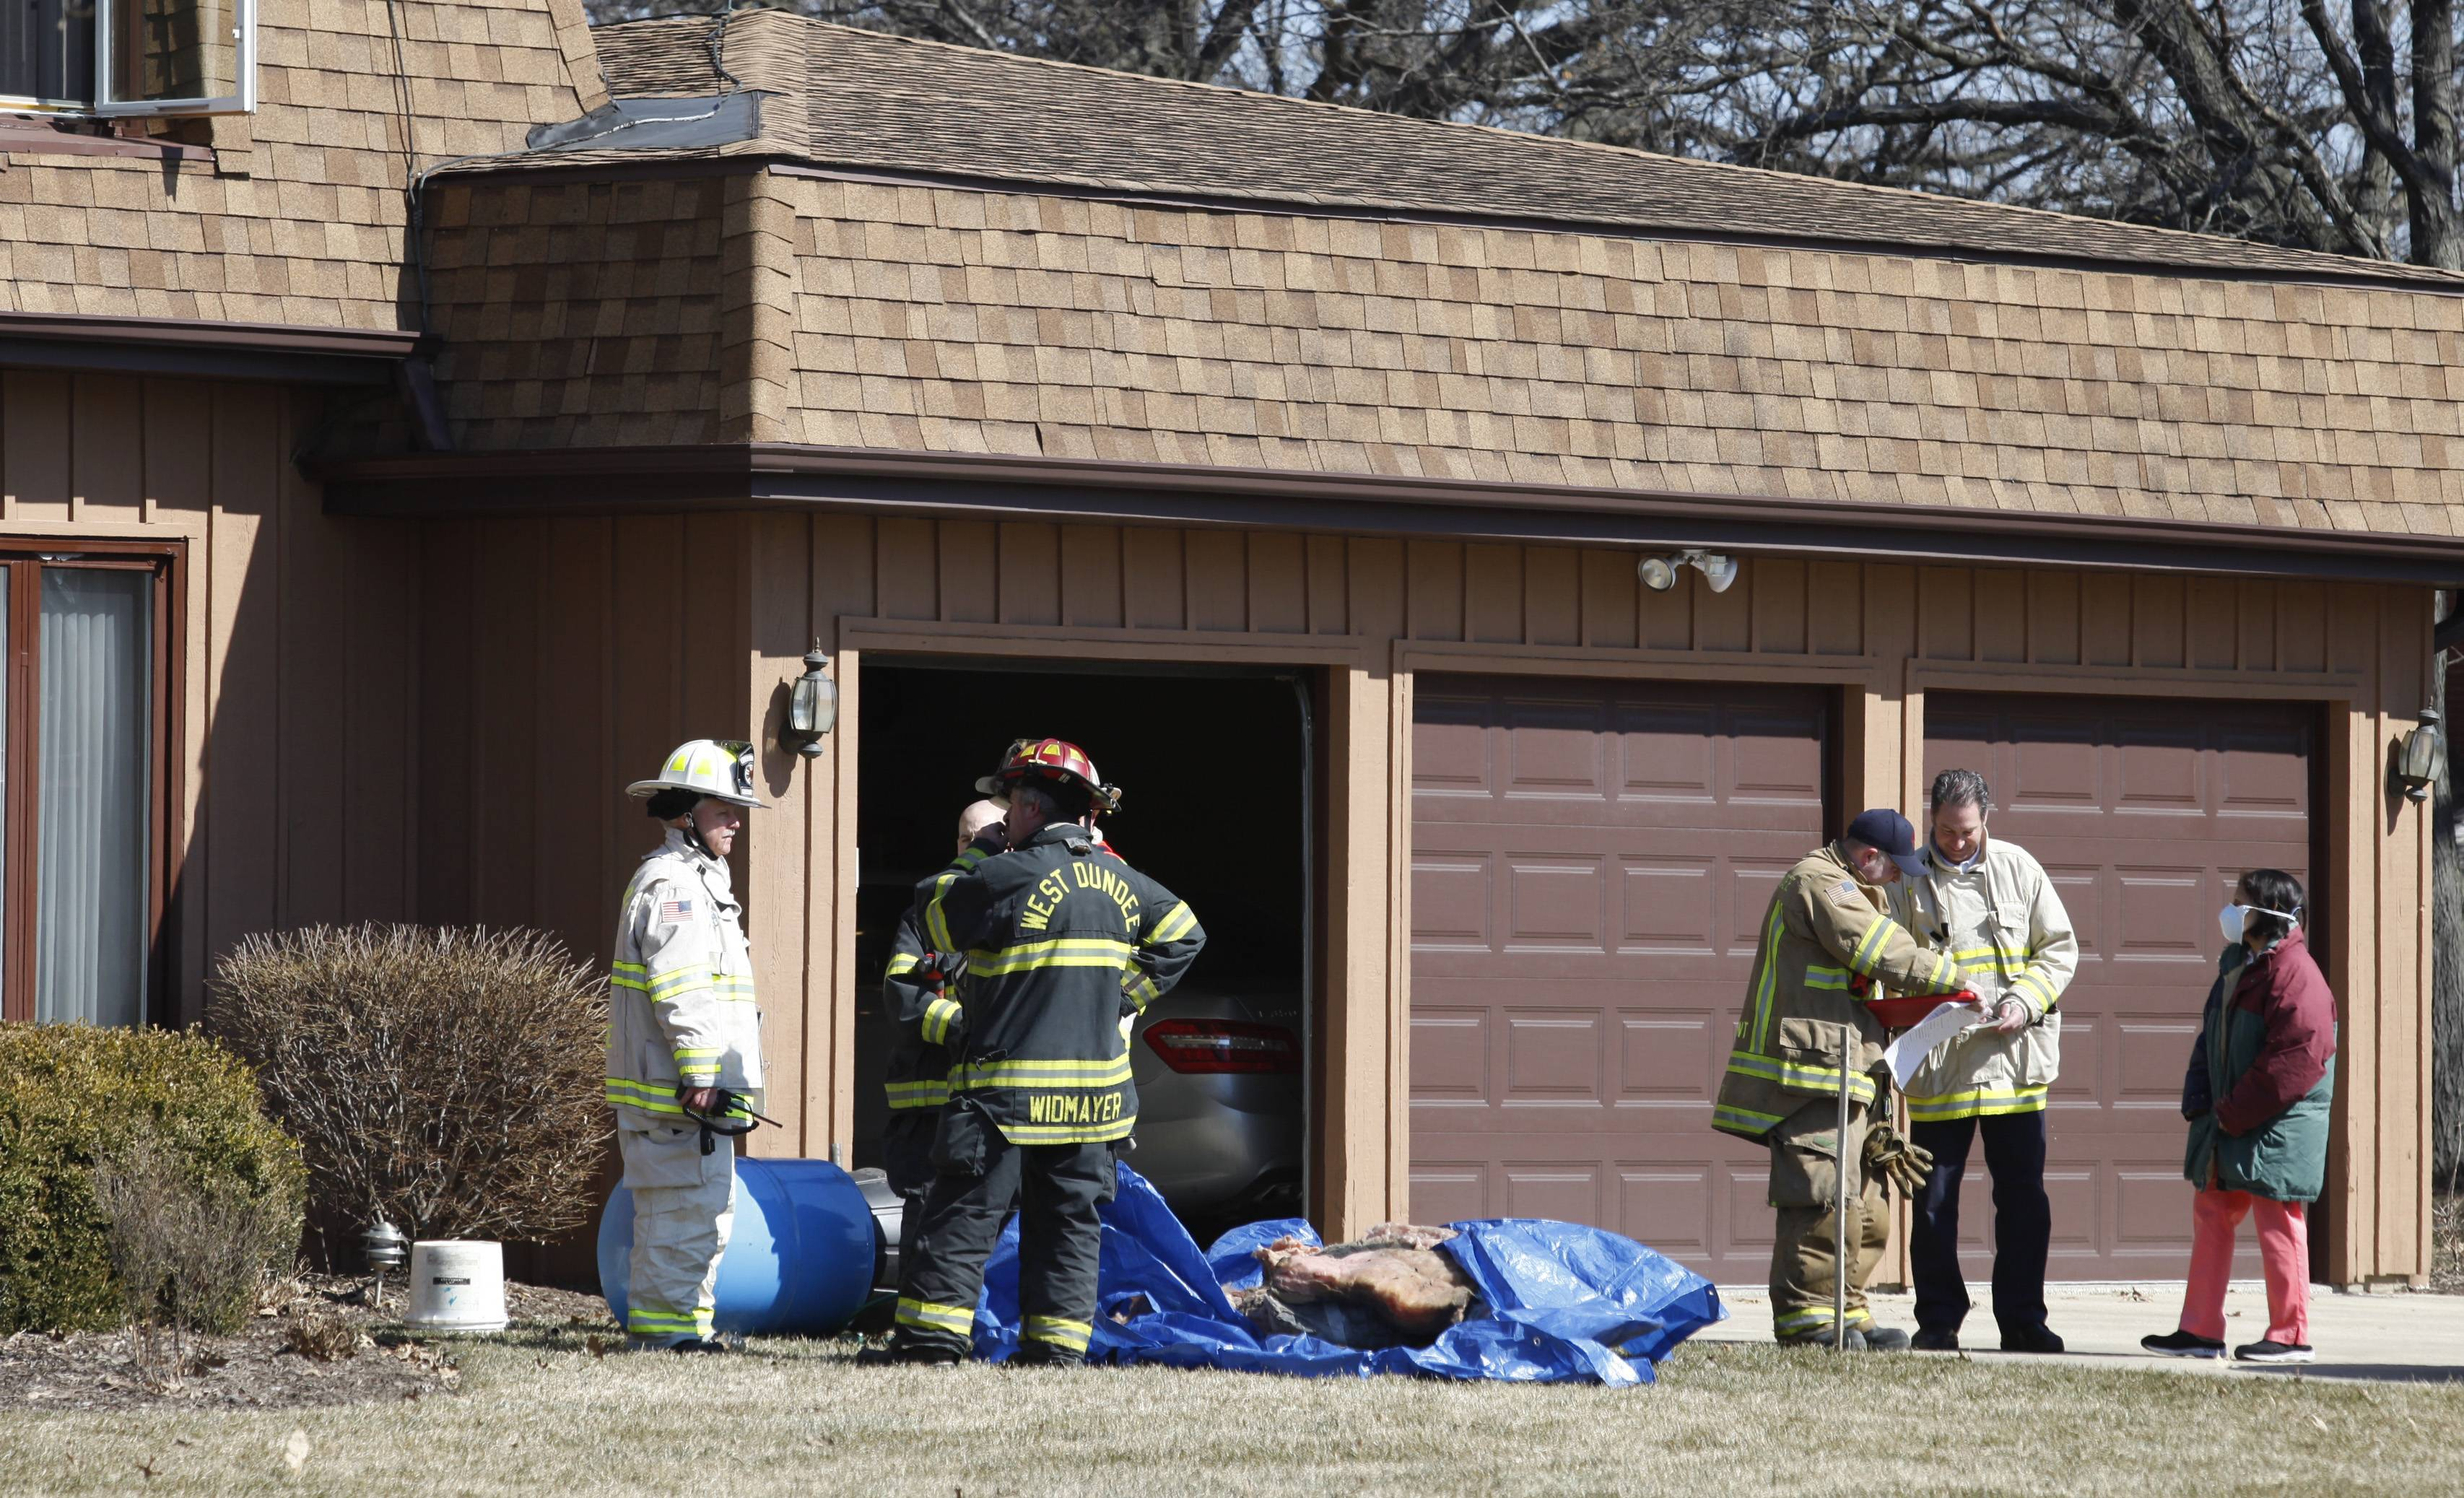 Firefighters from Rutland-Dundee and West Dundee fire departments discuss the situation outside a home along Frontenac Drive in West Dundee Monday morning after a small explosion sent two plumbing contractors to the hospital with minor injuries.